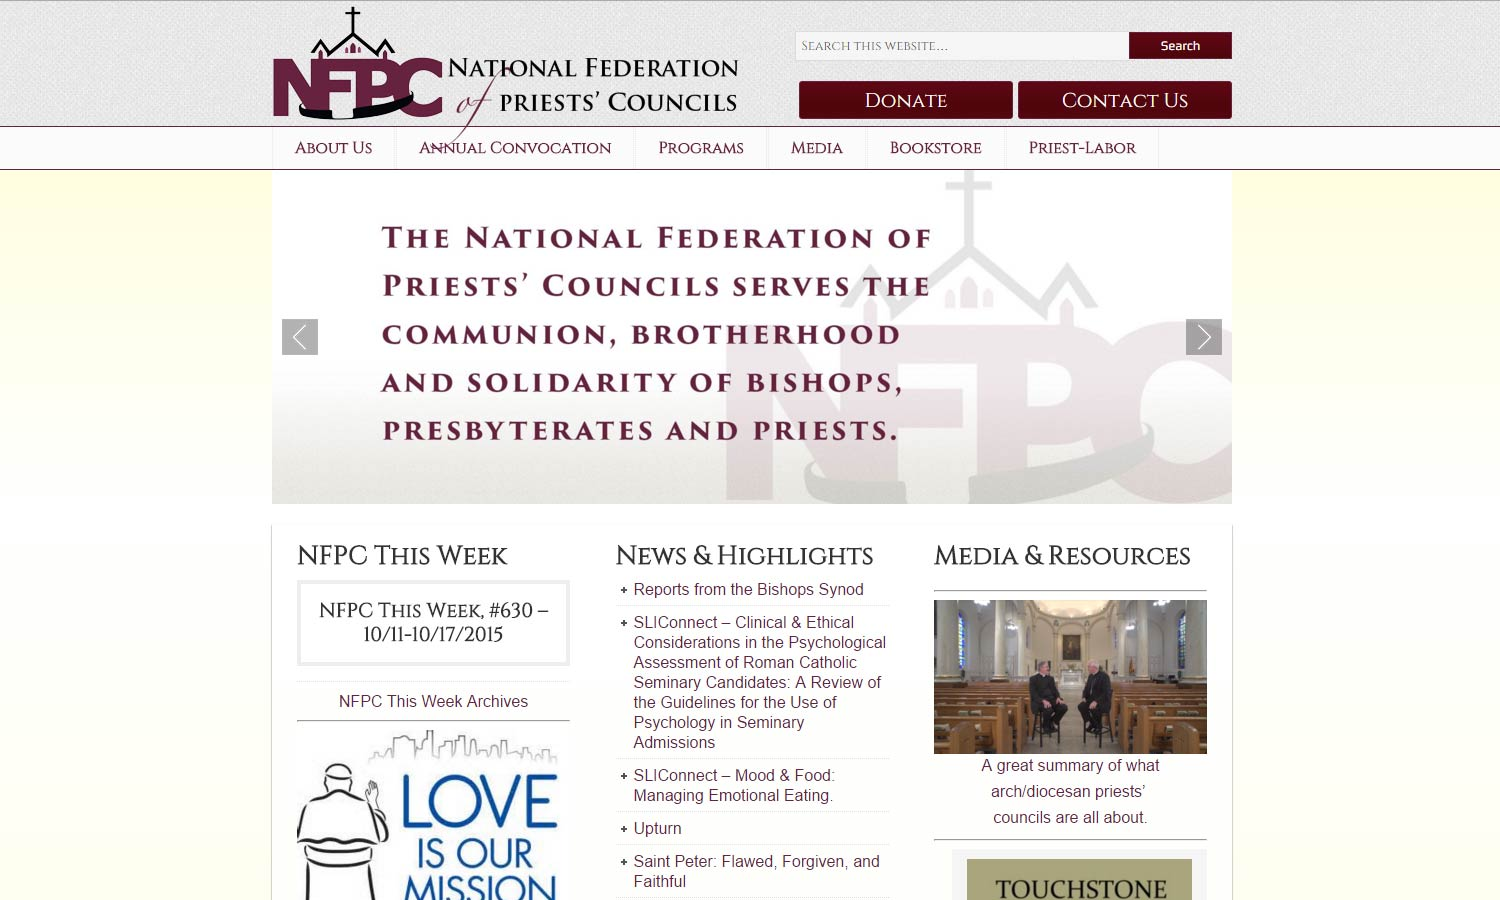 National Federation of Priests' Councils